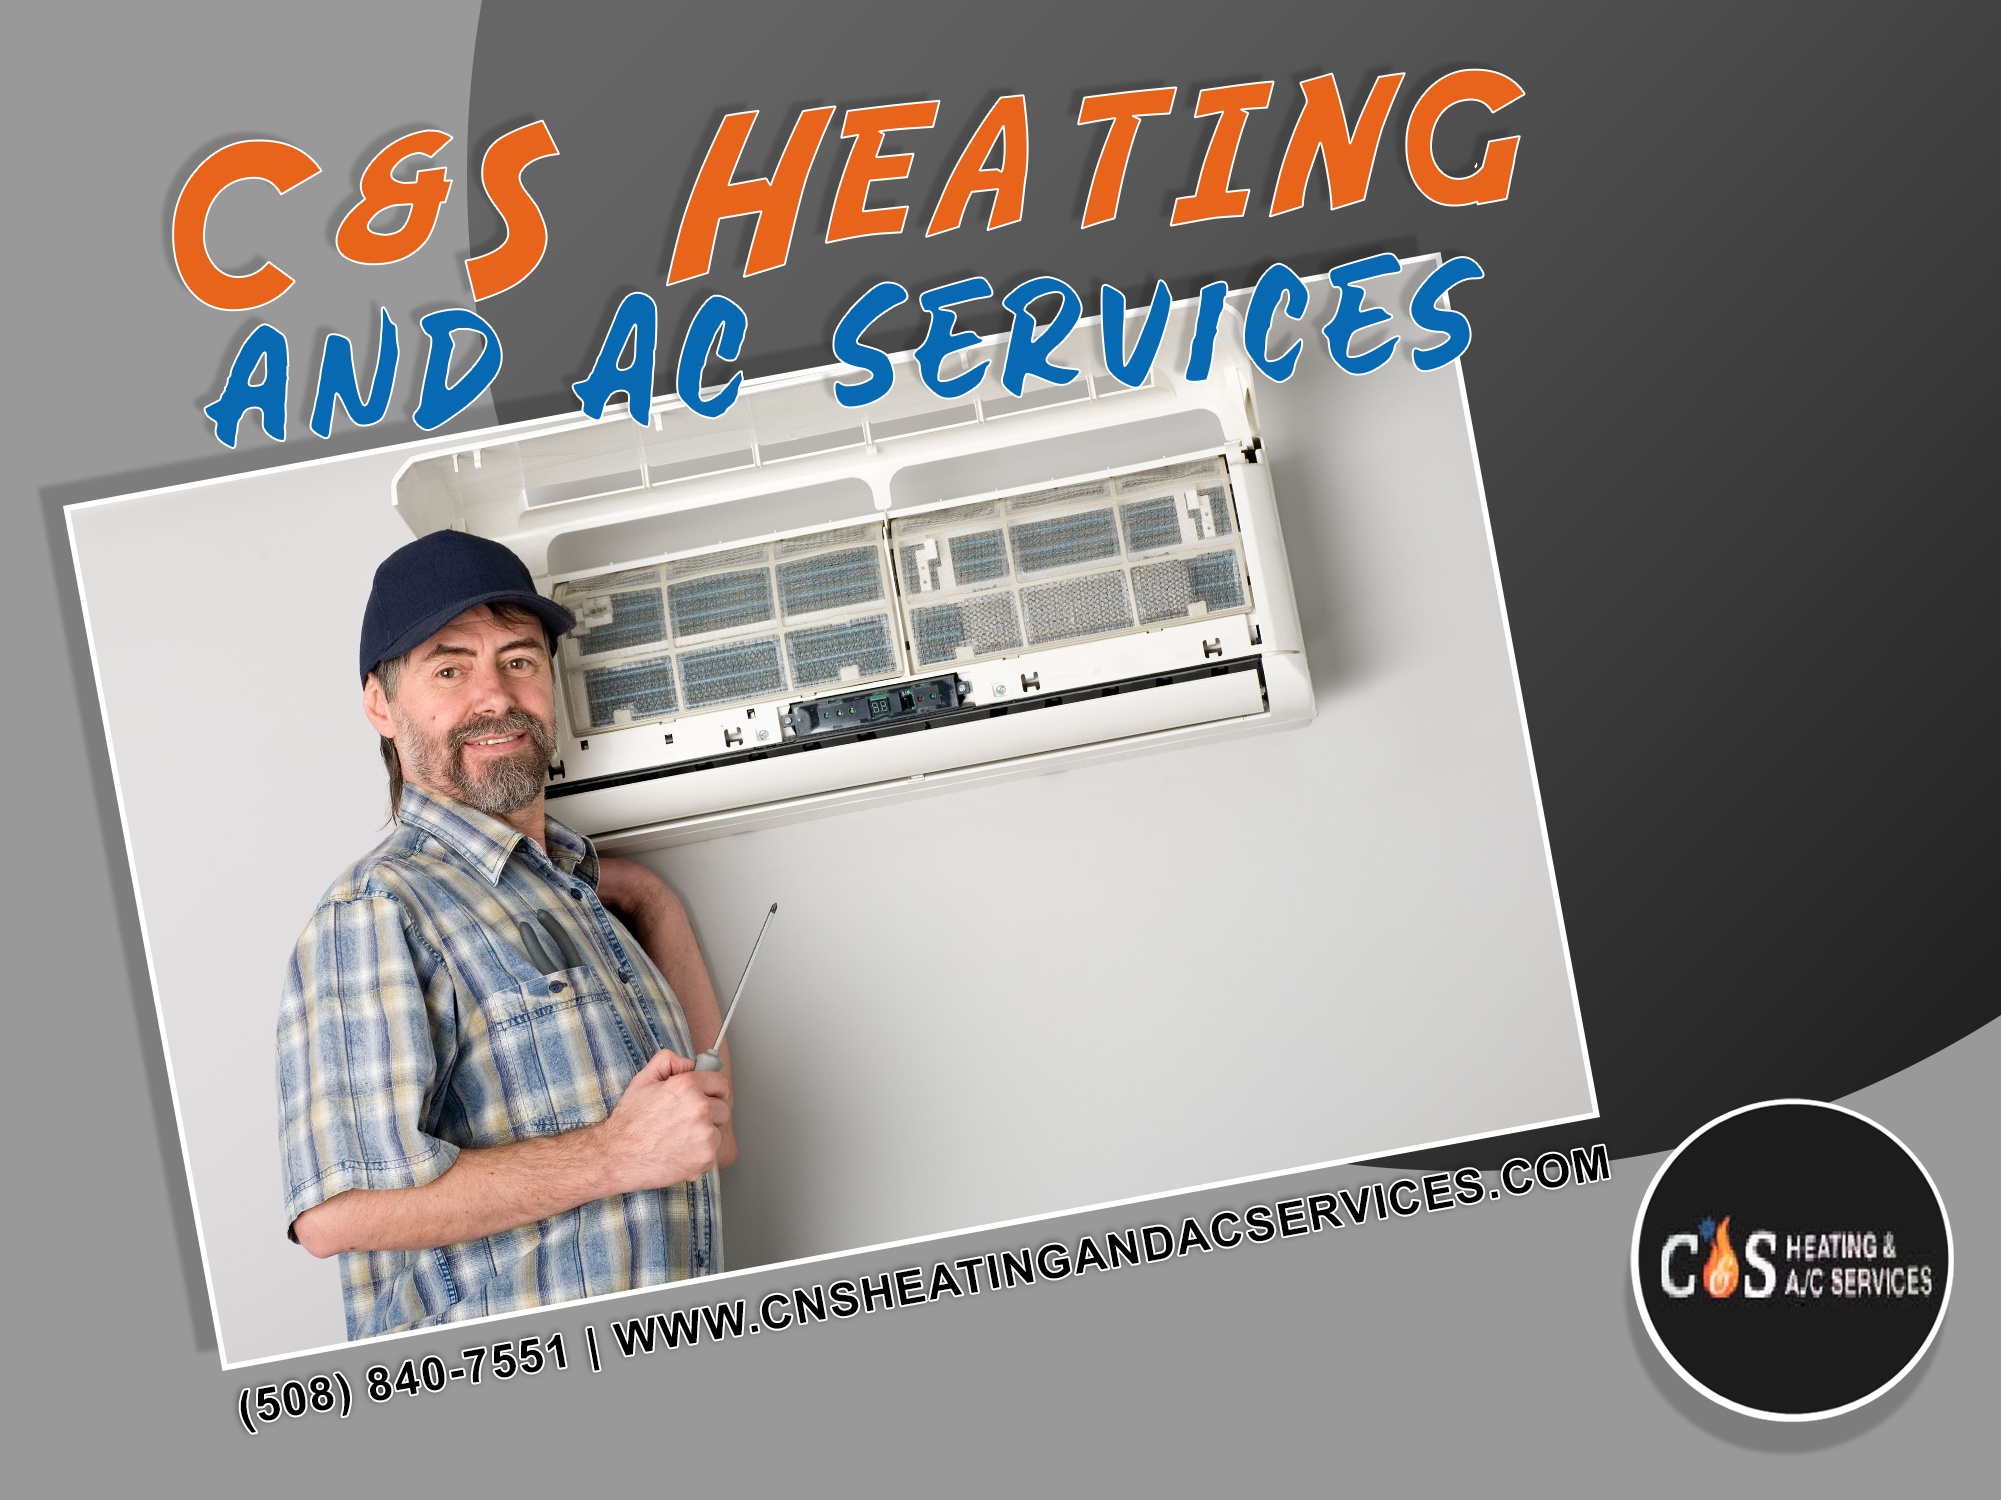 C&S Heating and AC Services are unlike most HVAC companies